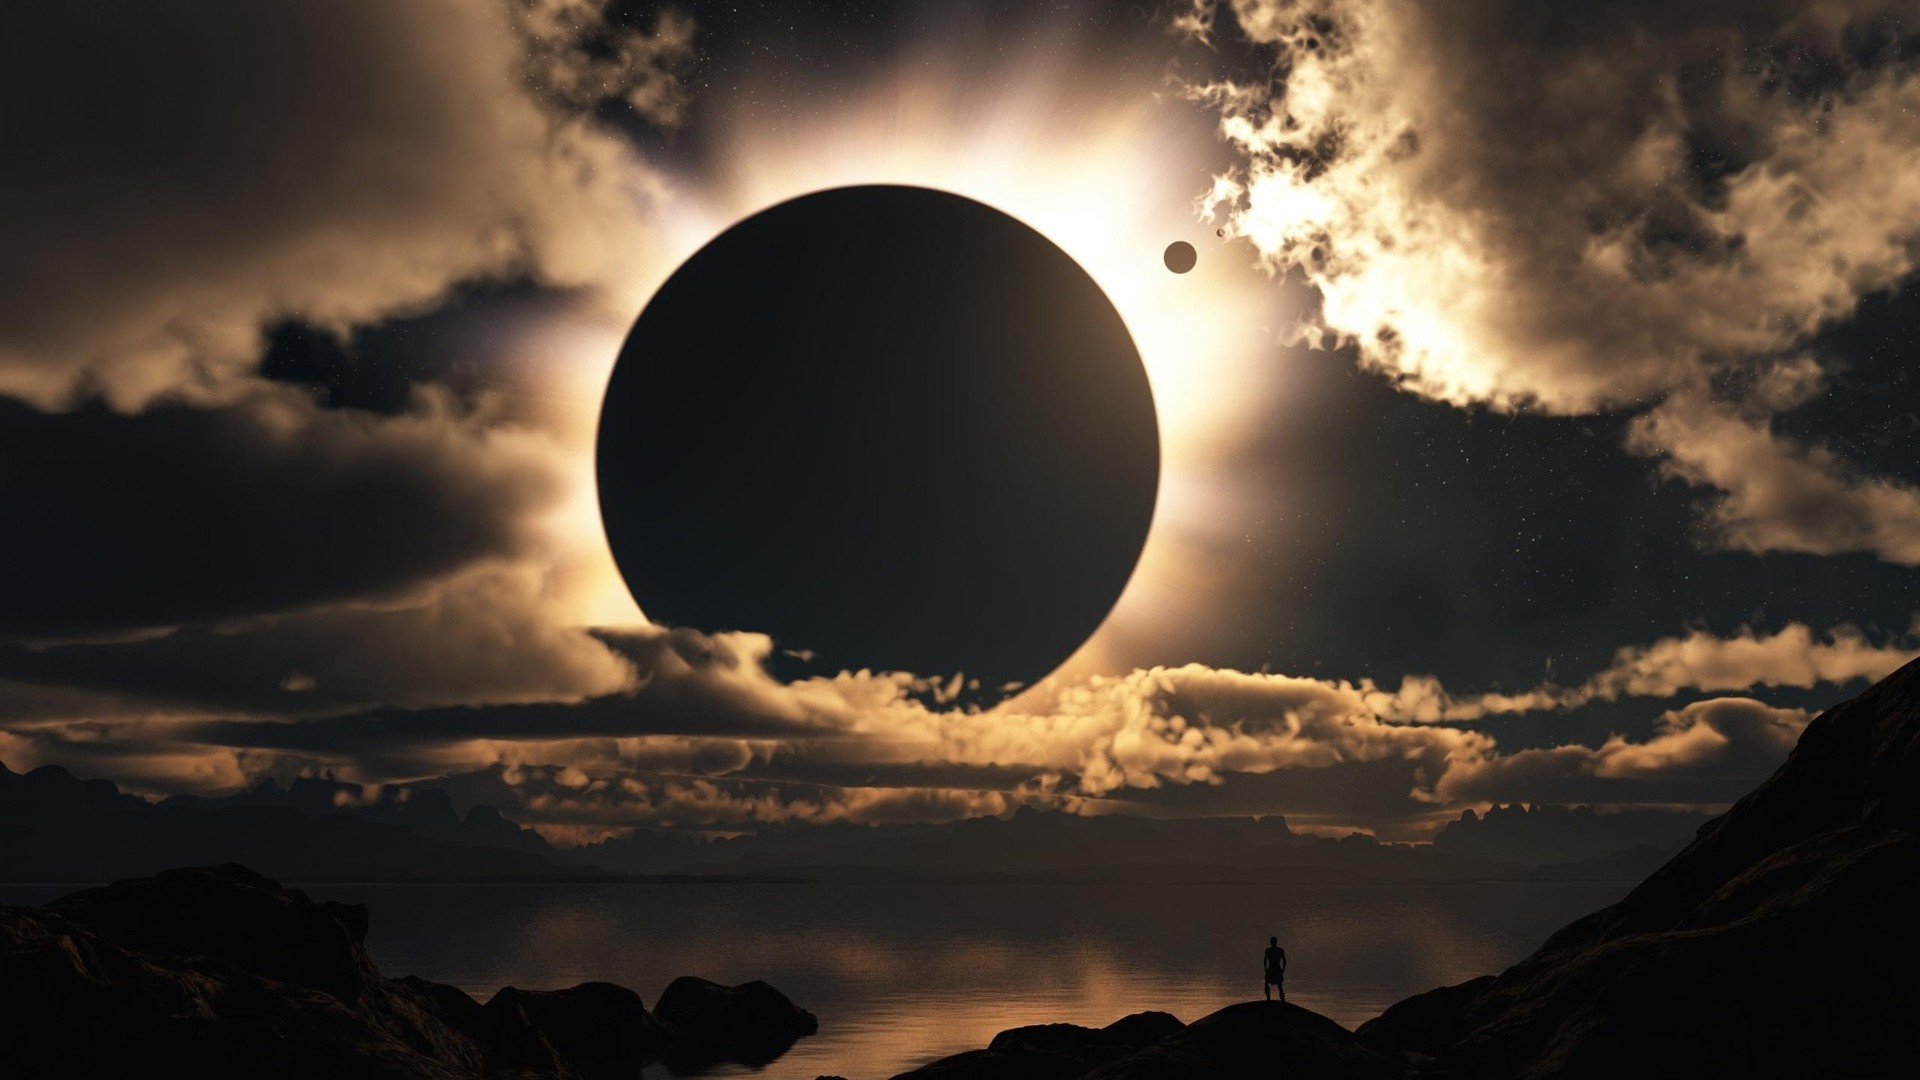 Sky Eclipse HD Wallpaper Background Images 1920x1080